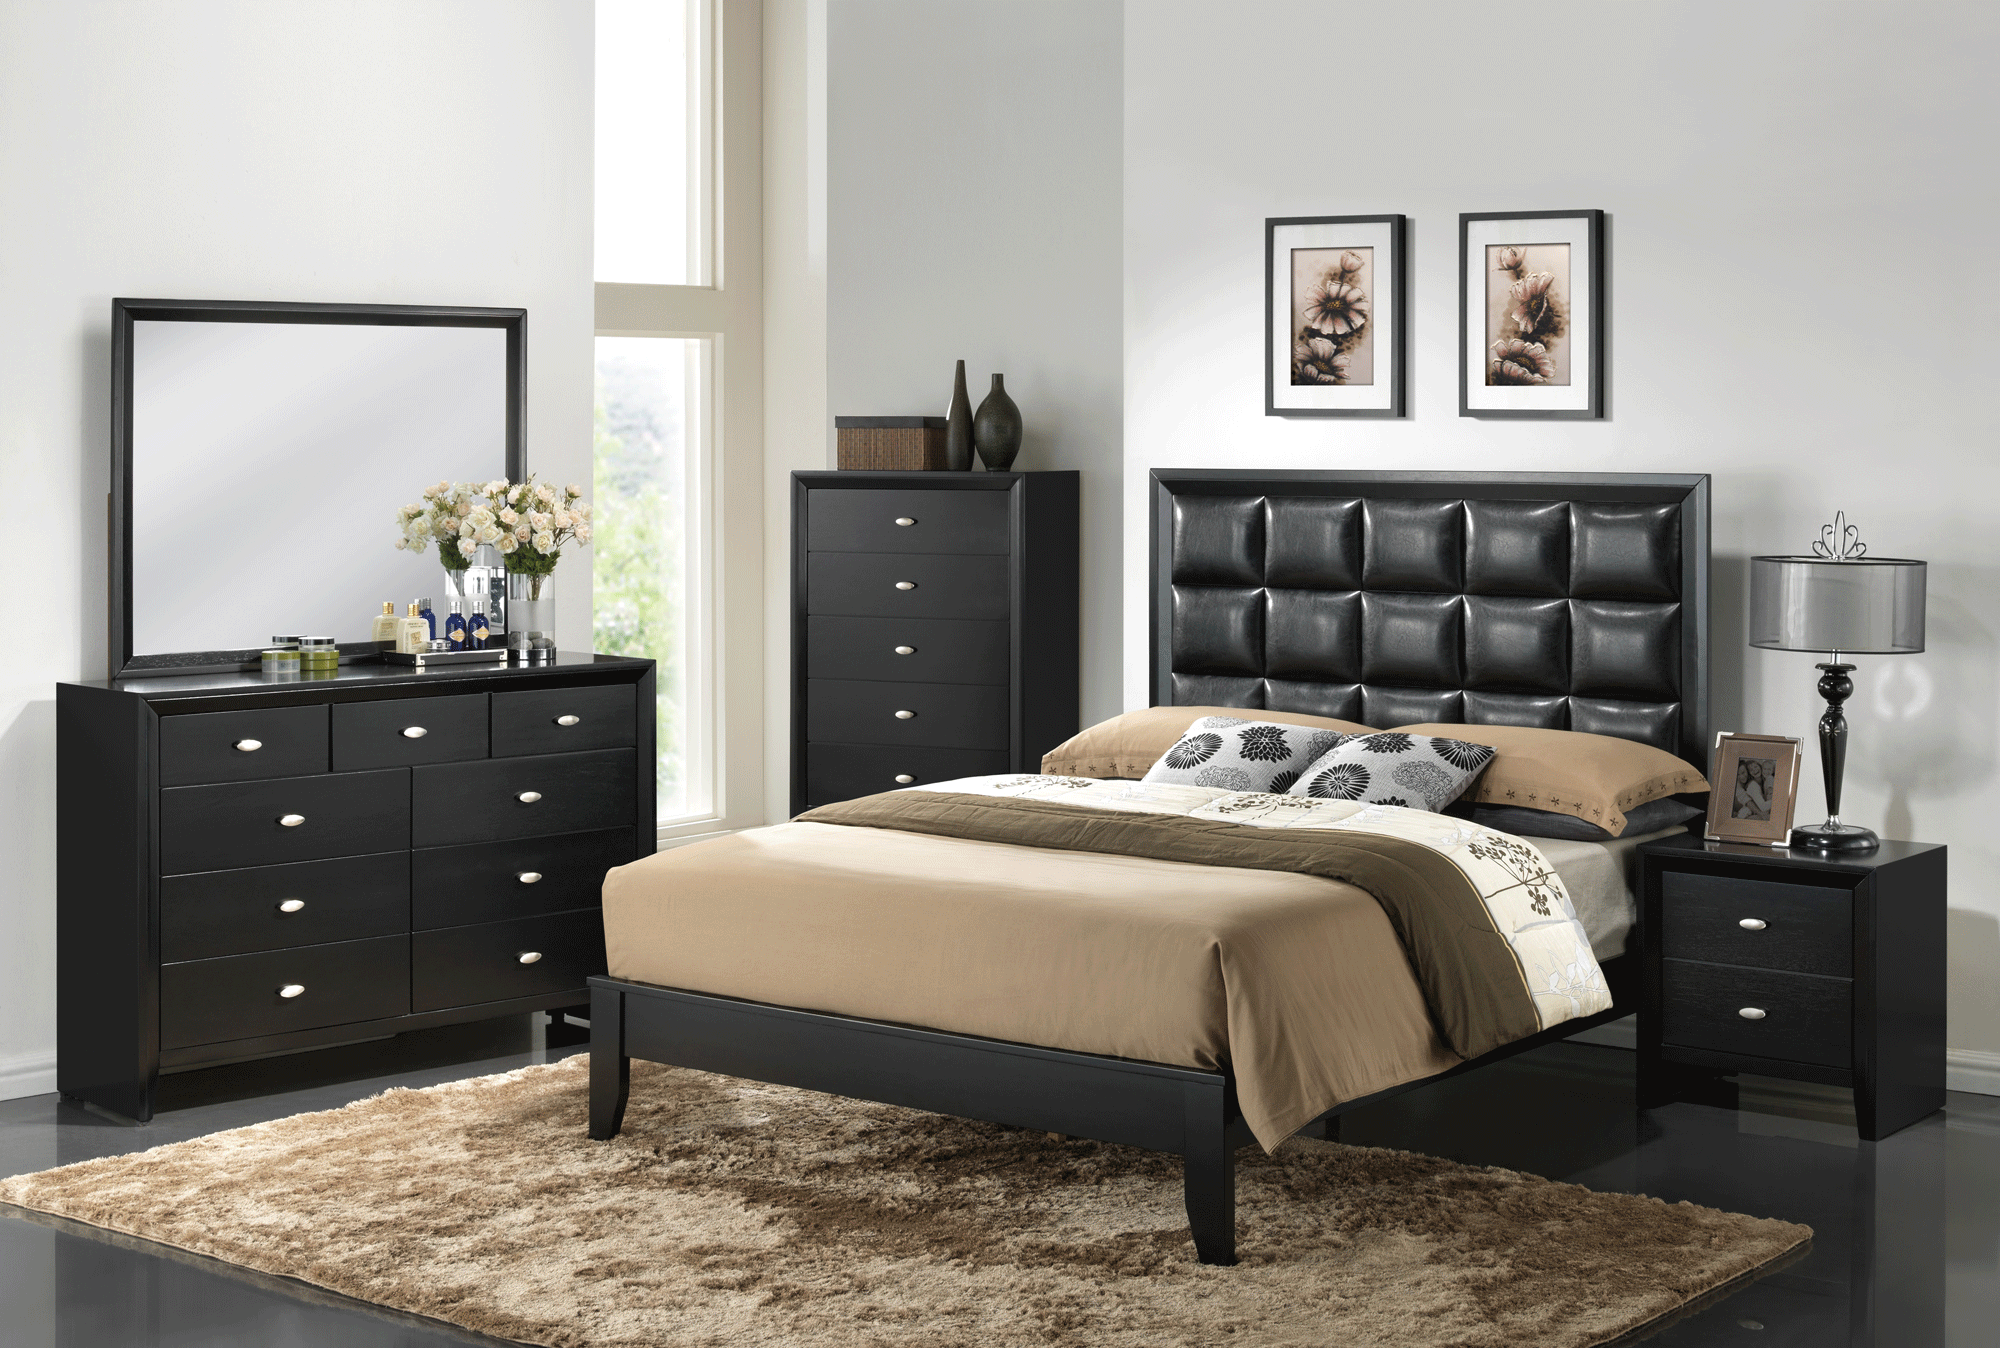 Carolina black bedroom set by global furniture for All black bedroom furniture